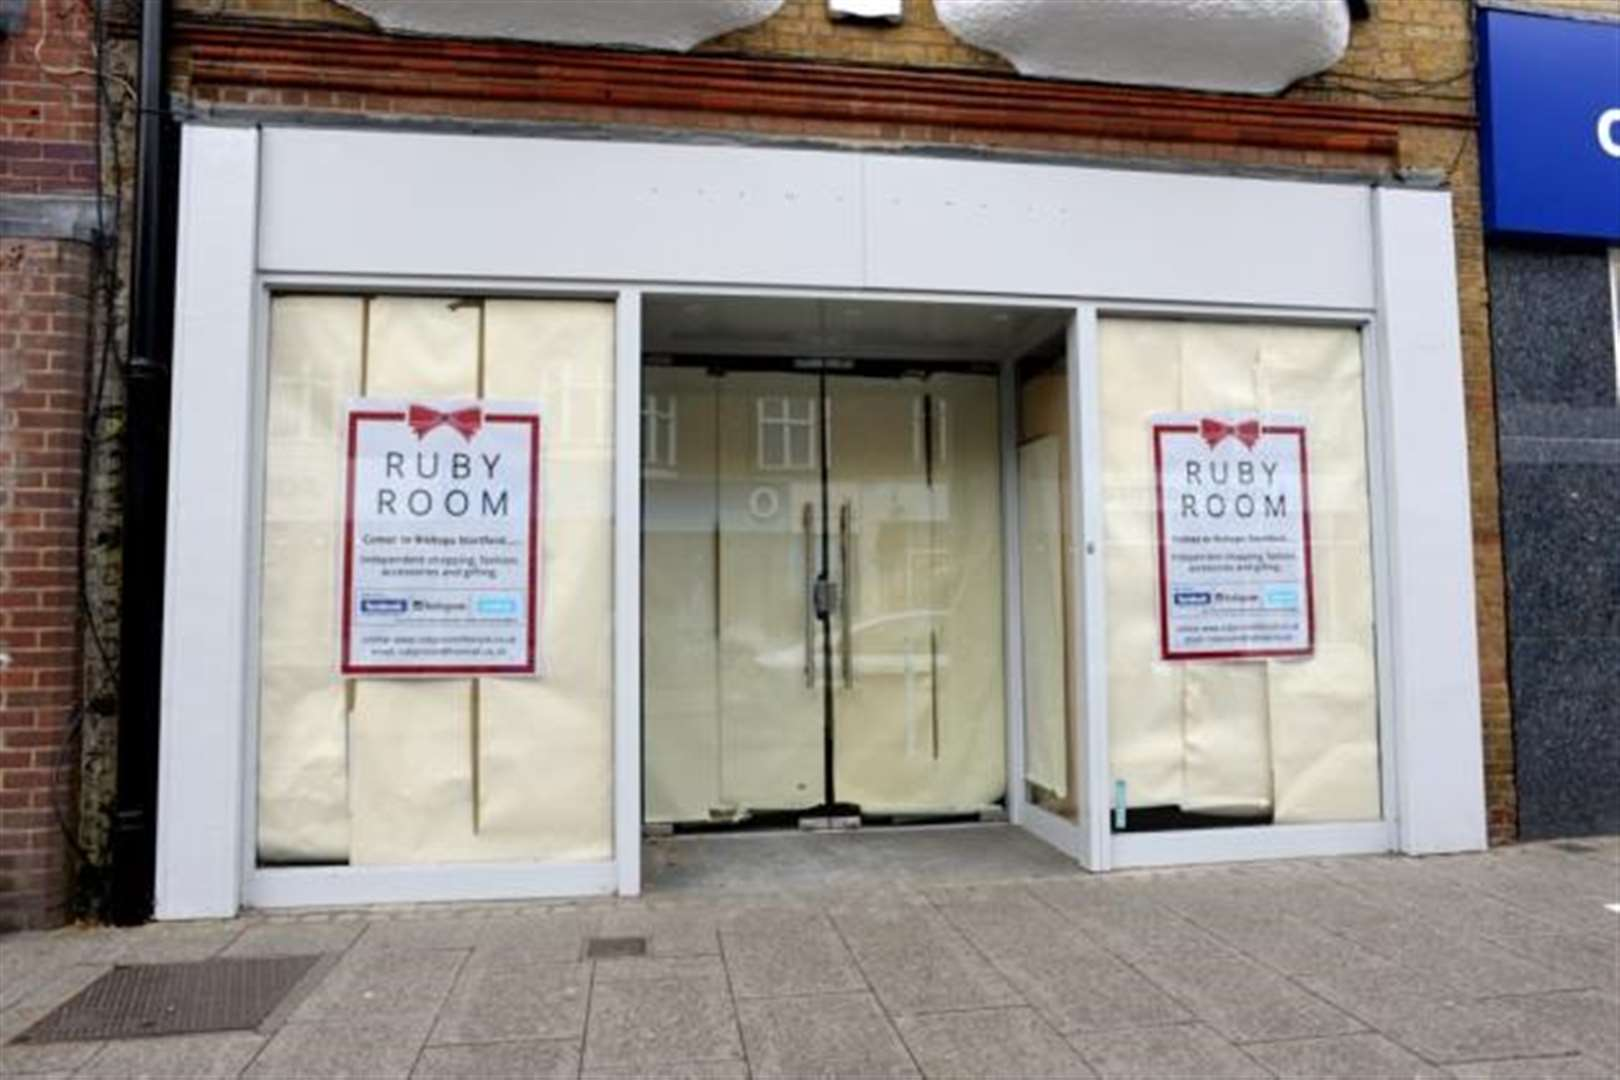 Ruby Room to replace Gerry Weber in Stortford town centre